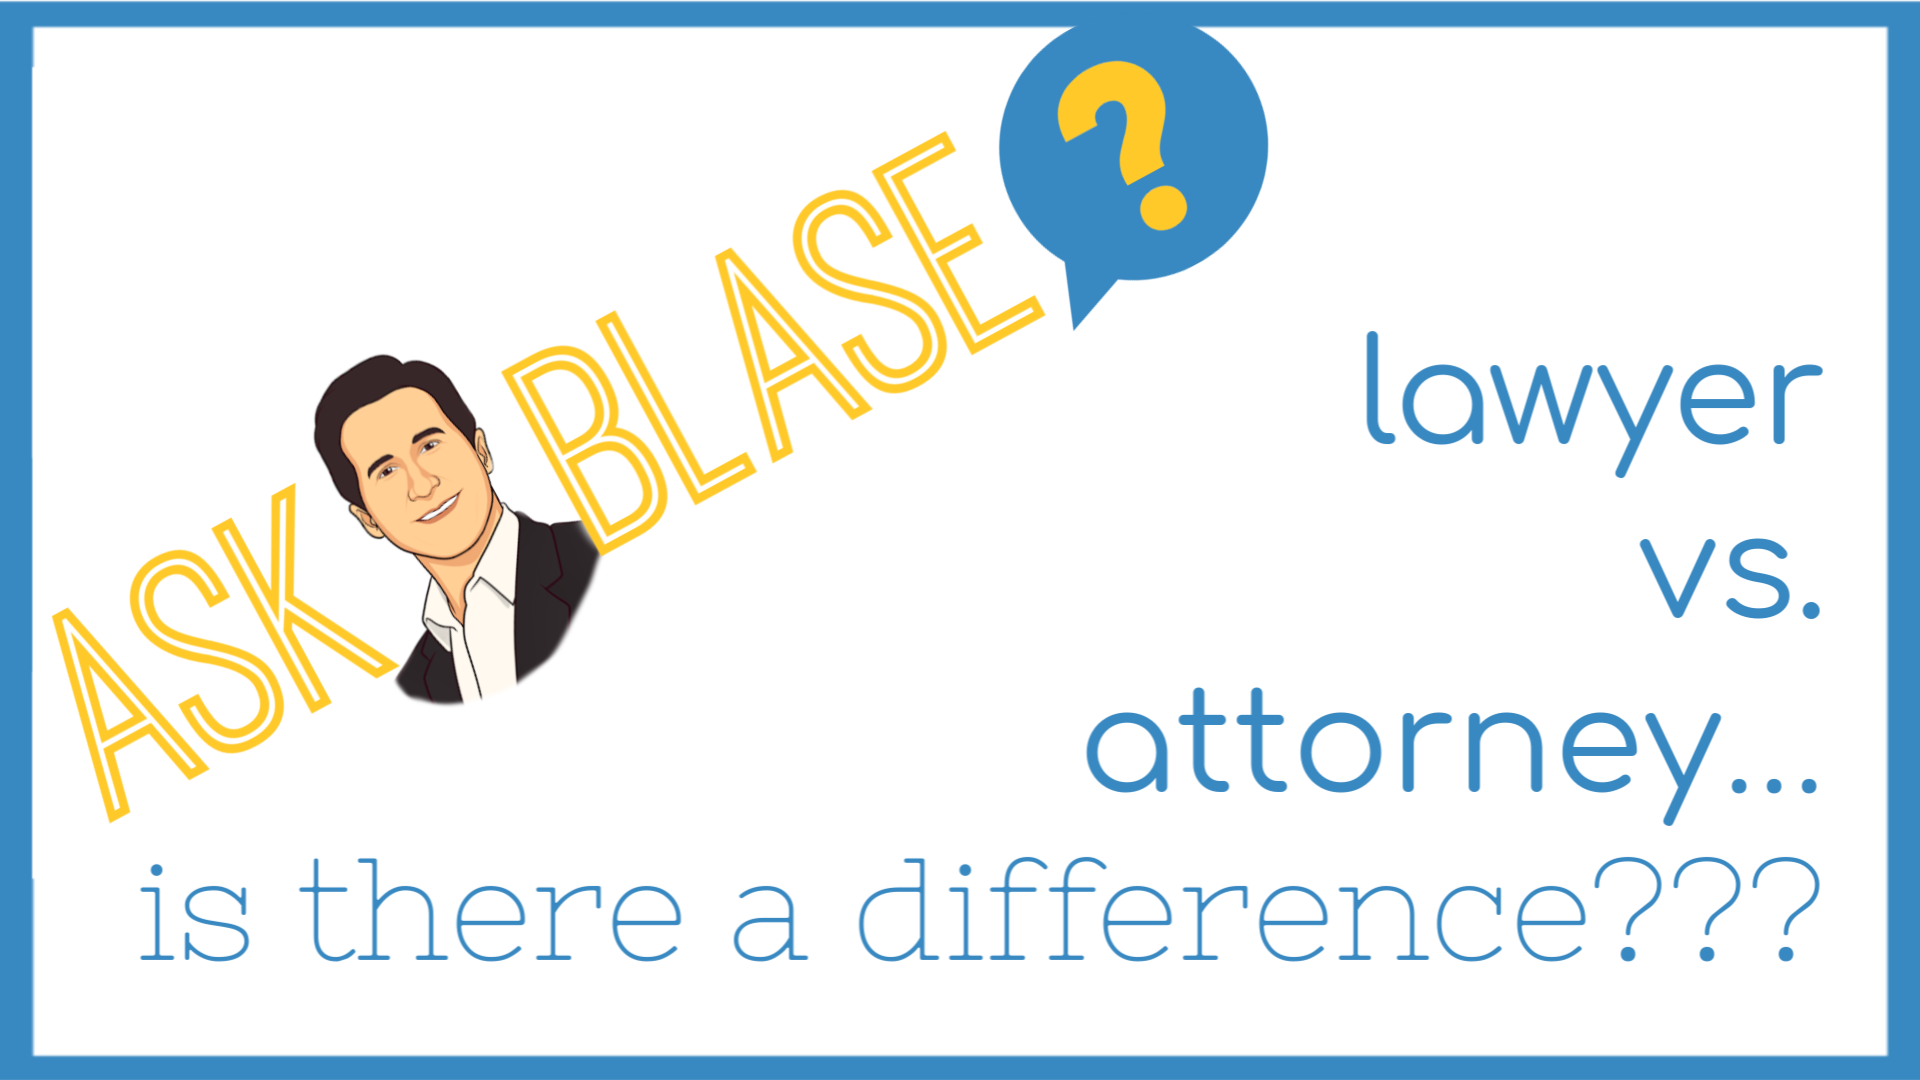 Is there a difference between a lawyer and attorney